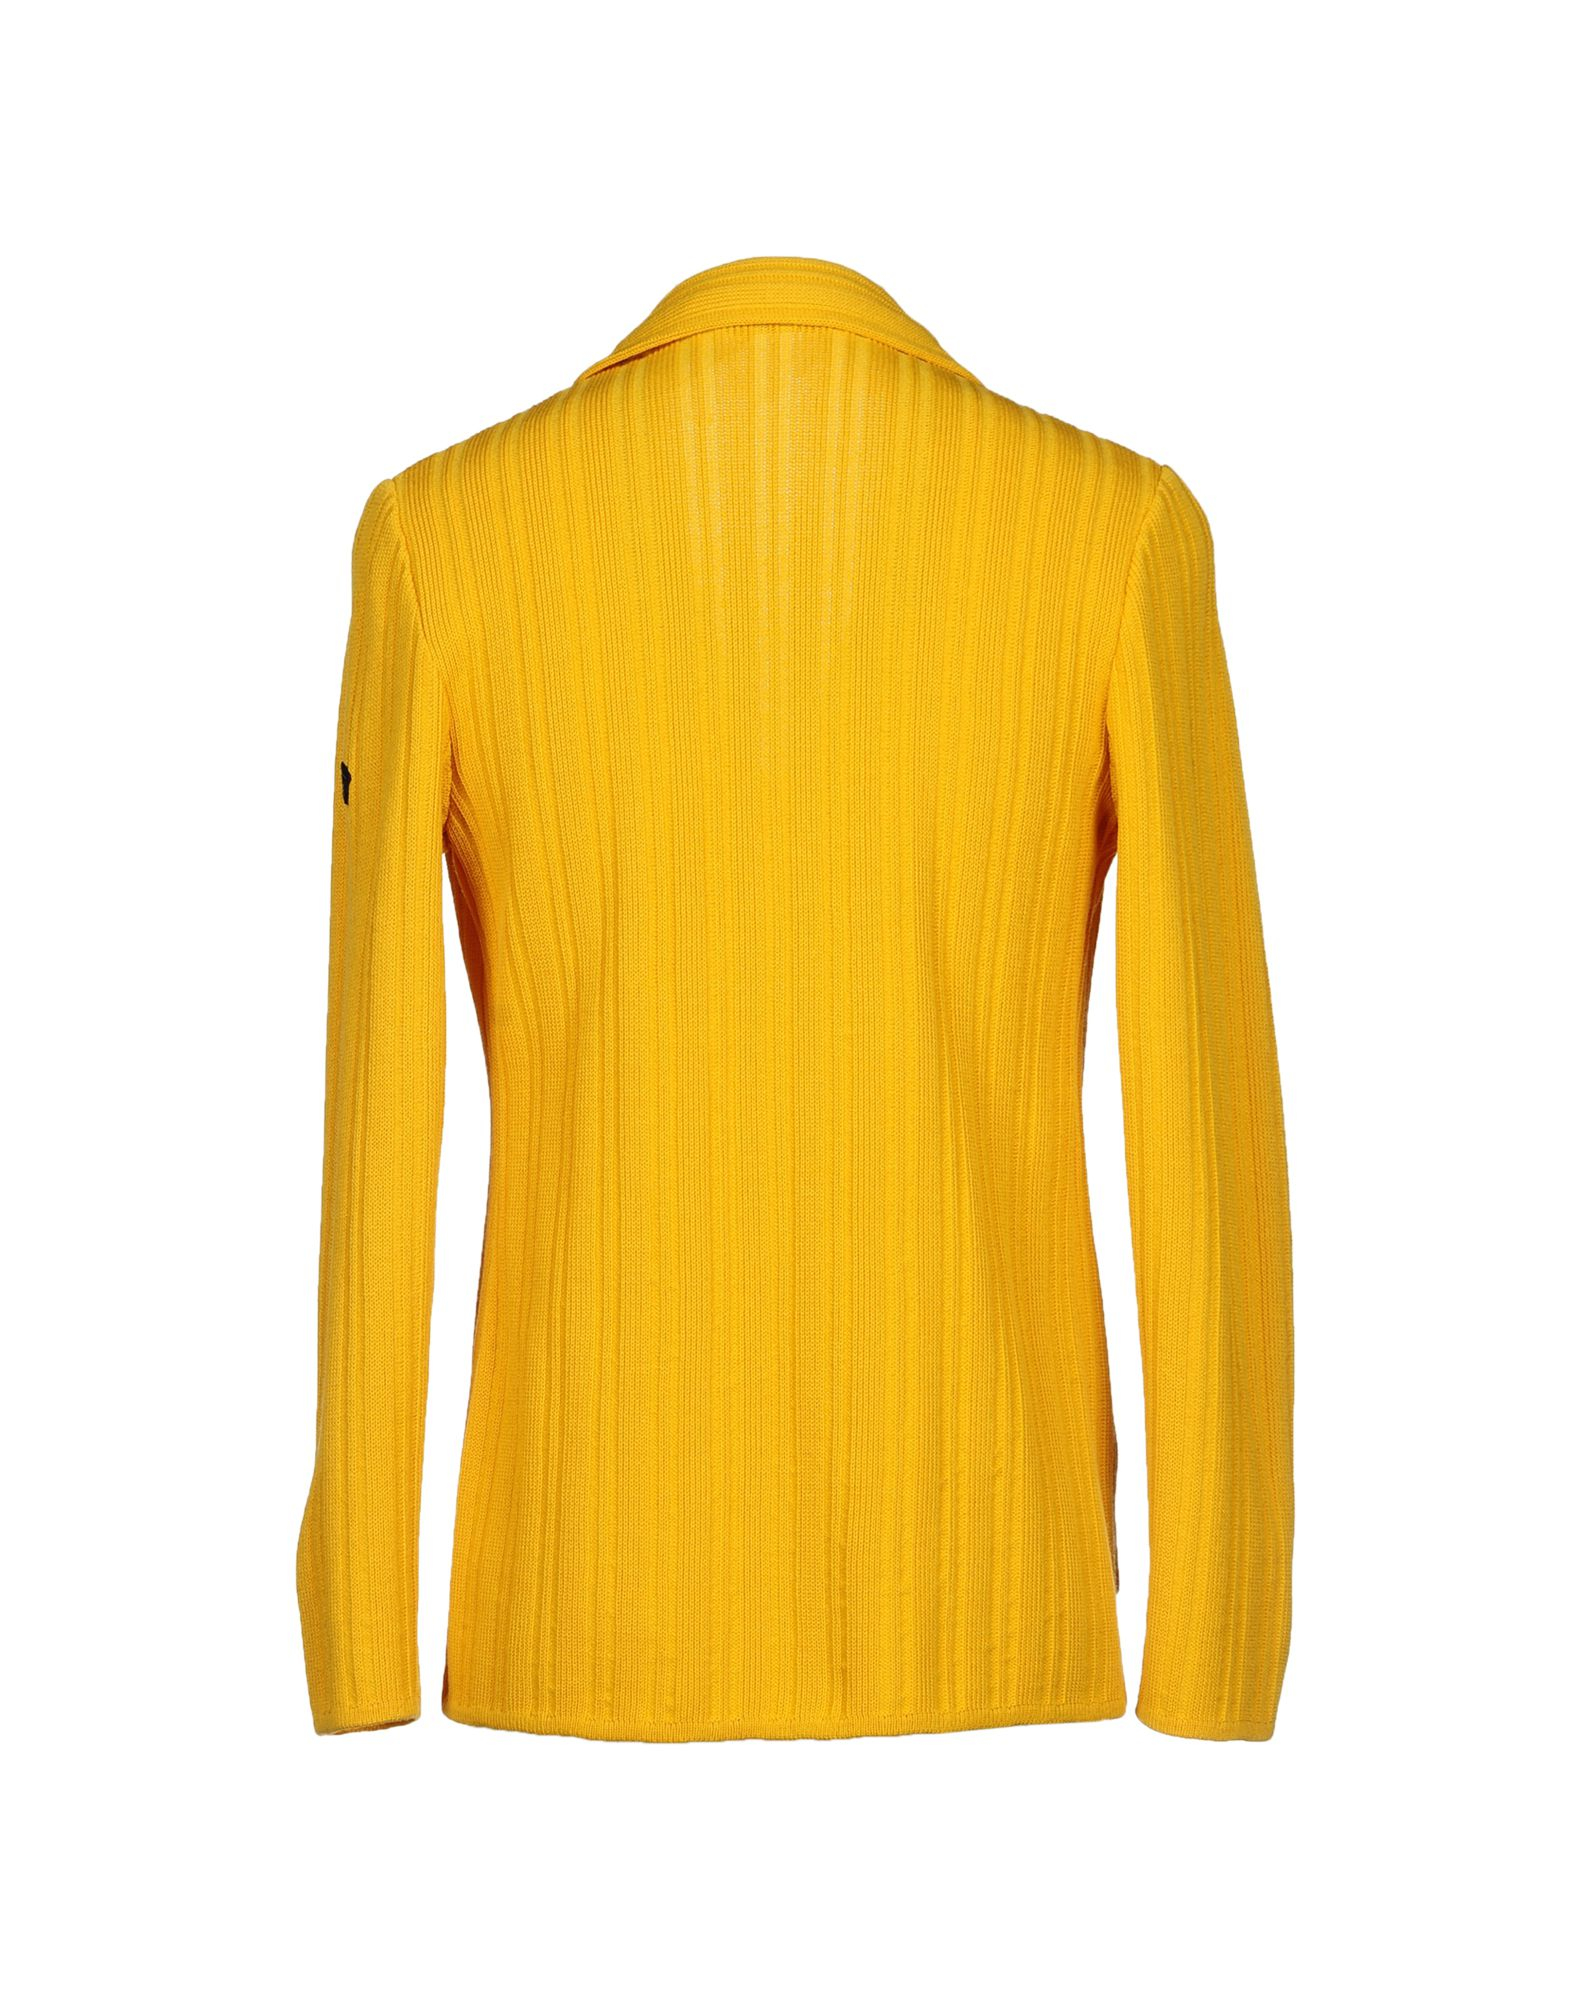 Find Yellow men's cardigans at ShopStyle. Shop the latest collection of Yellow men's cardigans from the most popular stores - all in one place.